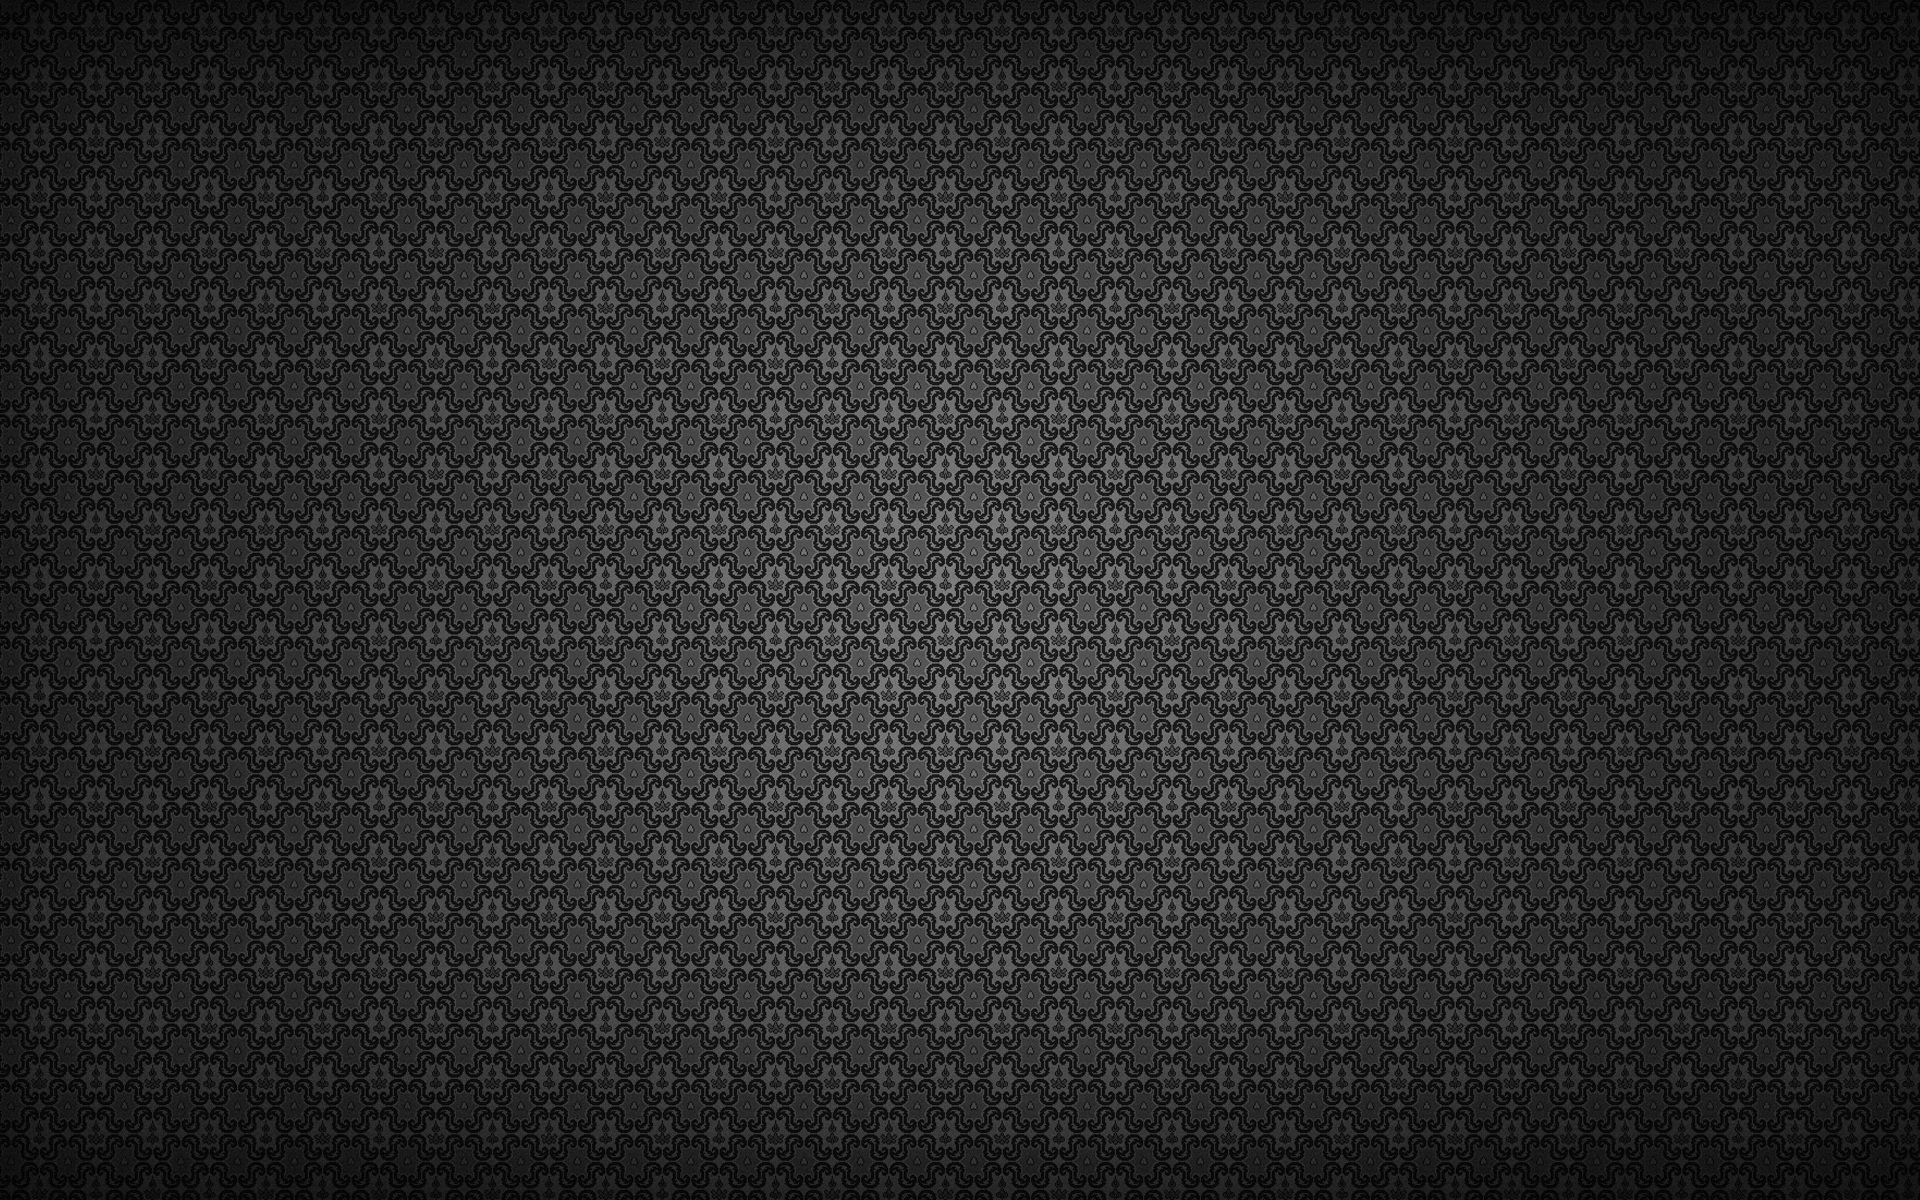 Background image texture - Texture Background Wallpaper 1920 1080 Backgrounds Texture 21 Wallpapers Adorable Wallpapers